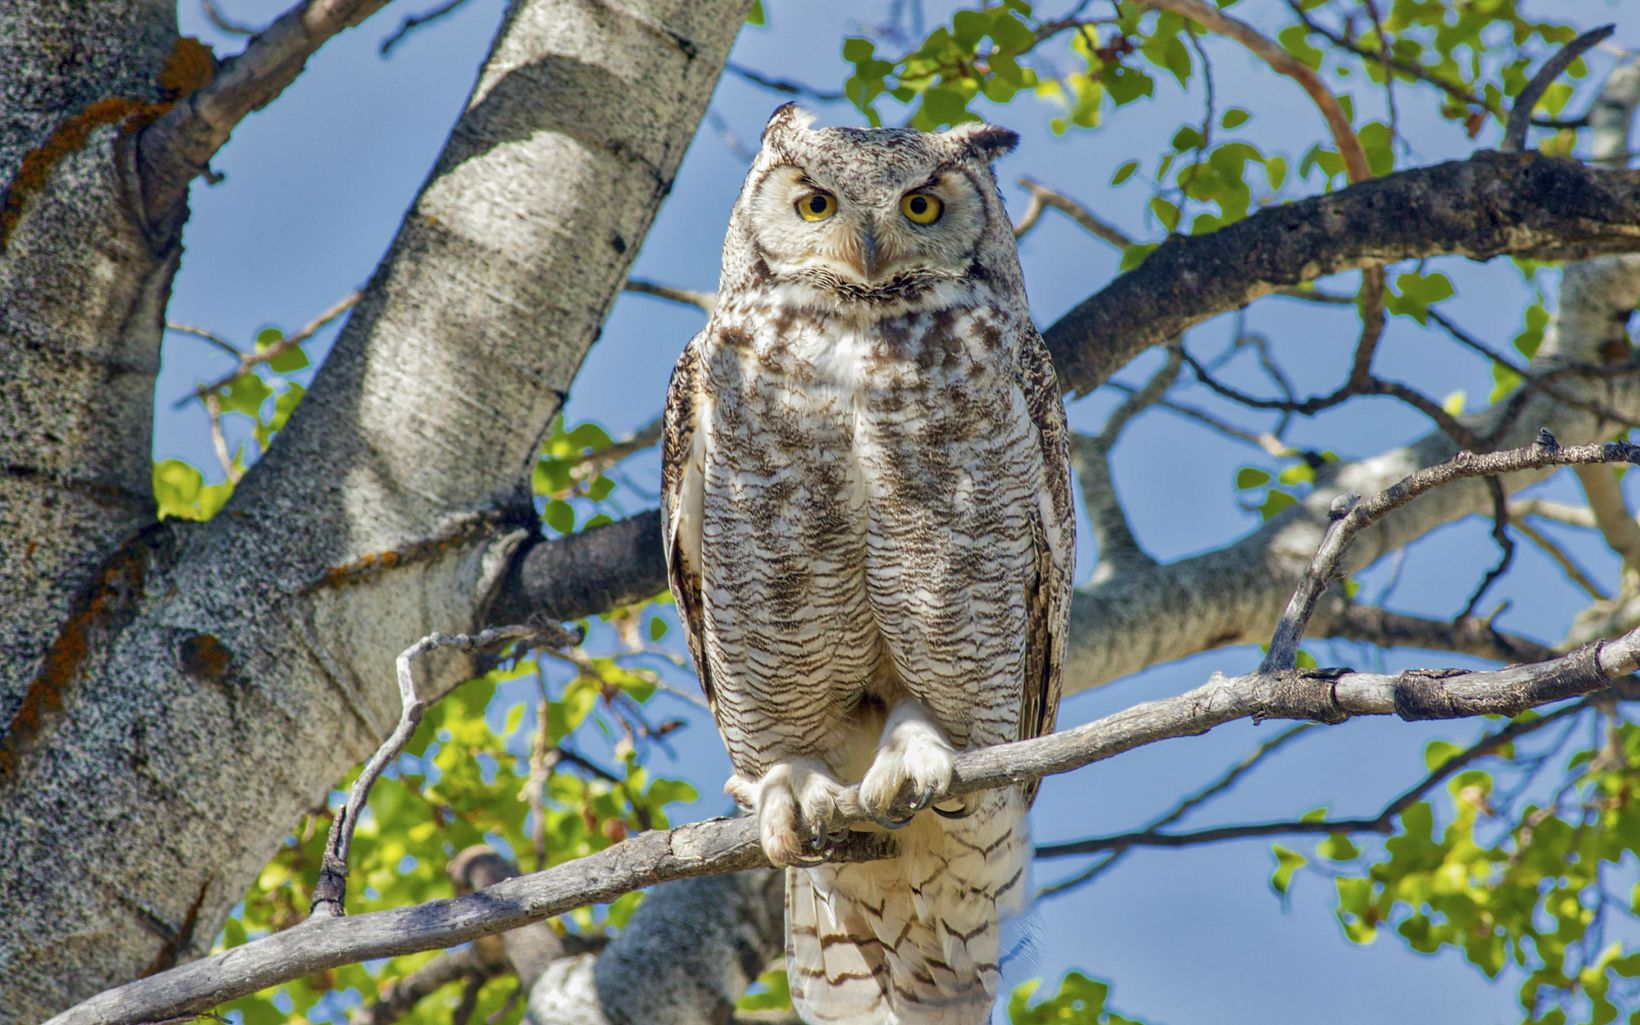 A large brown and white owl perched on a tree branch.